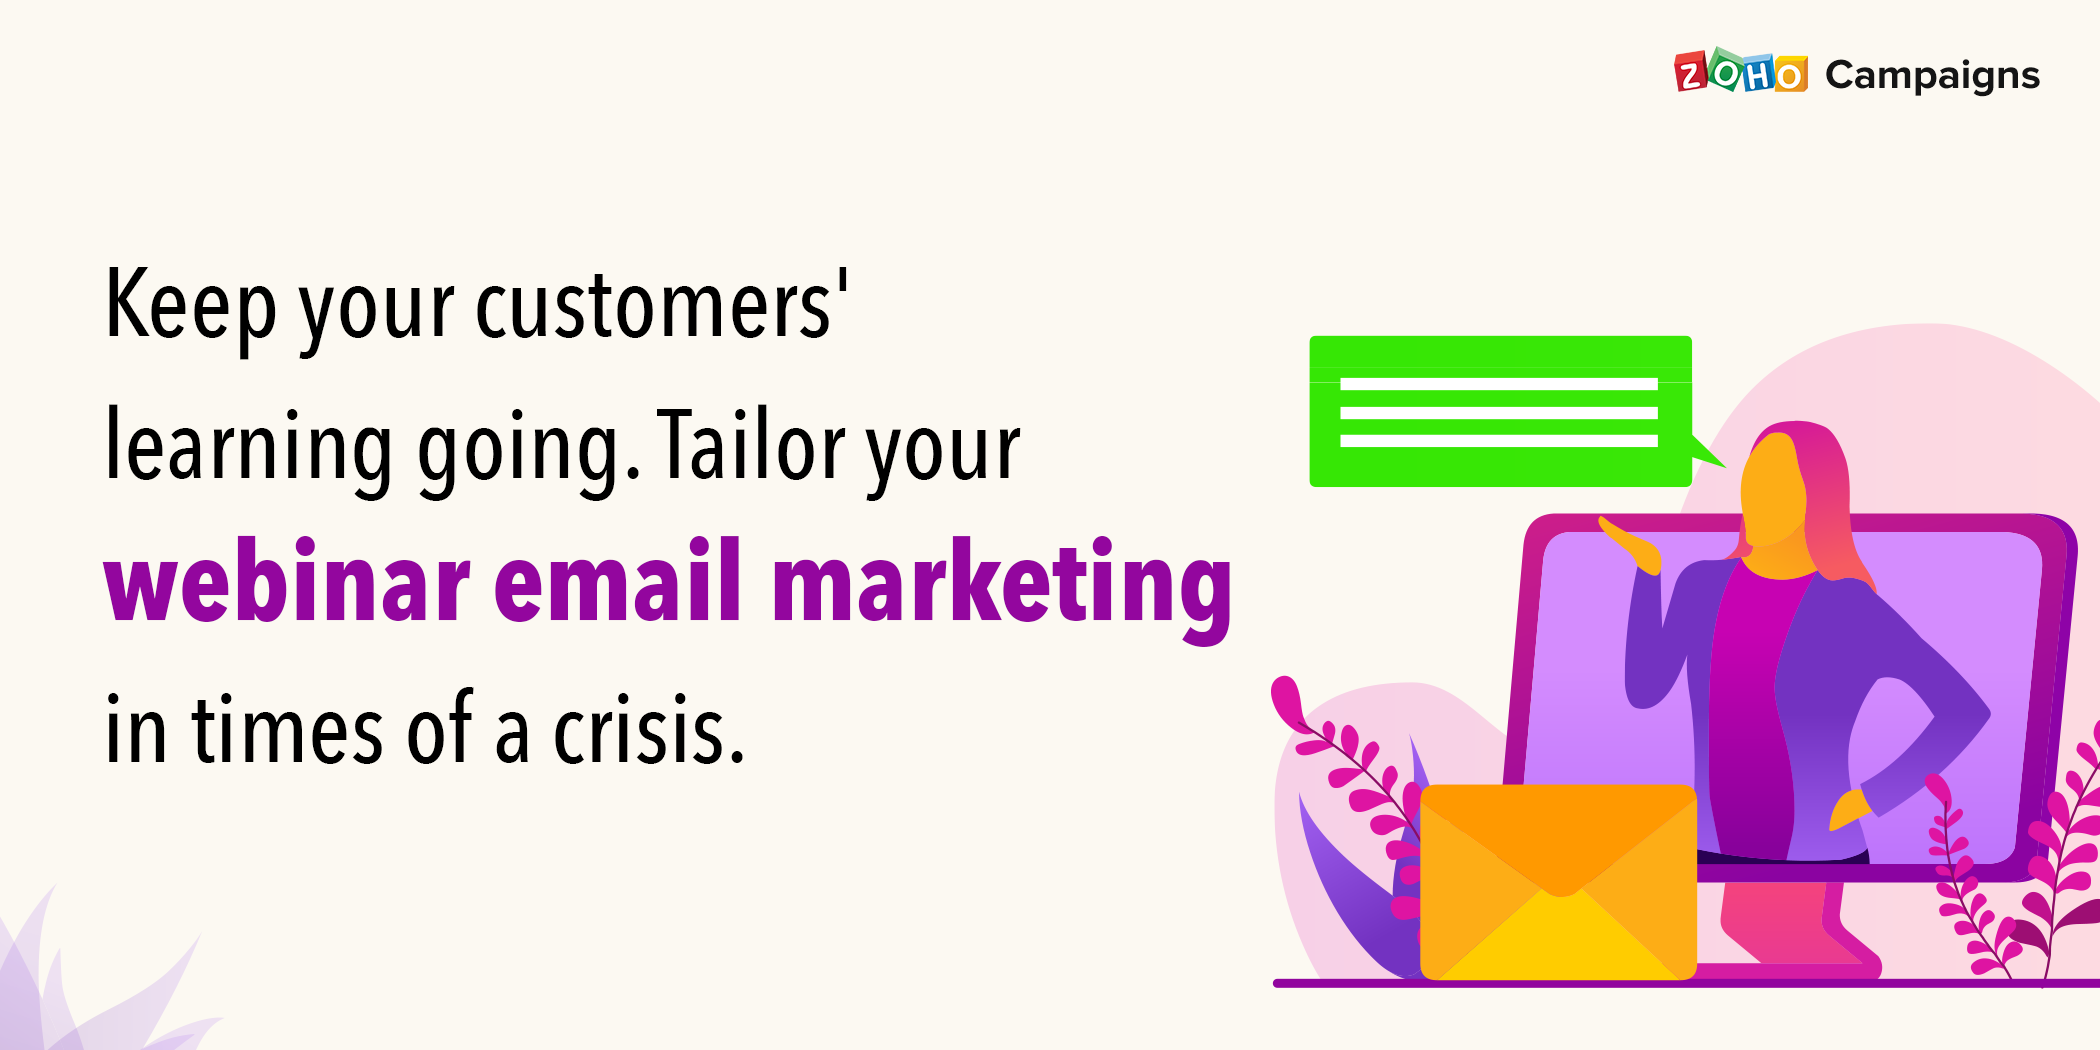 Keep your customers' learning going. Tailor your webinar email marketing in times of crisis.